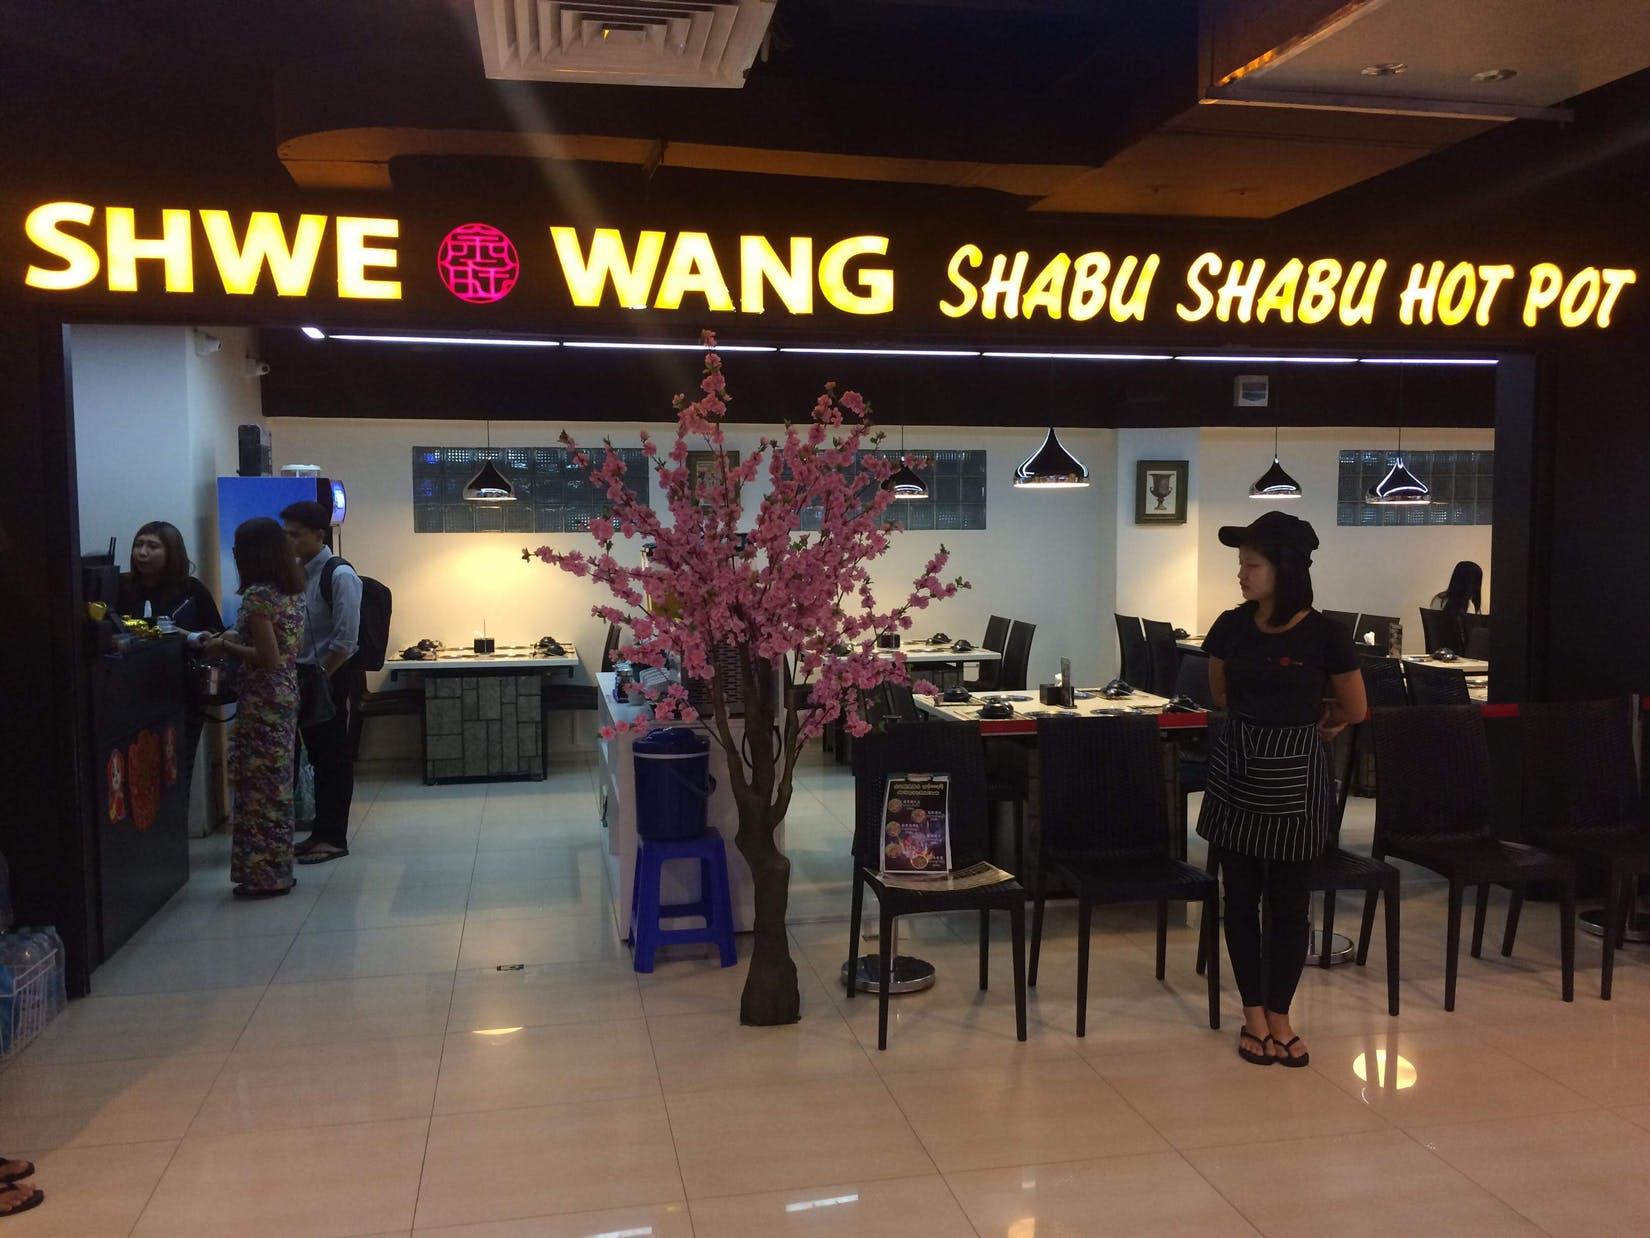 Shwe Wang Shabu Shabu Hot Pot | yathar